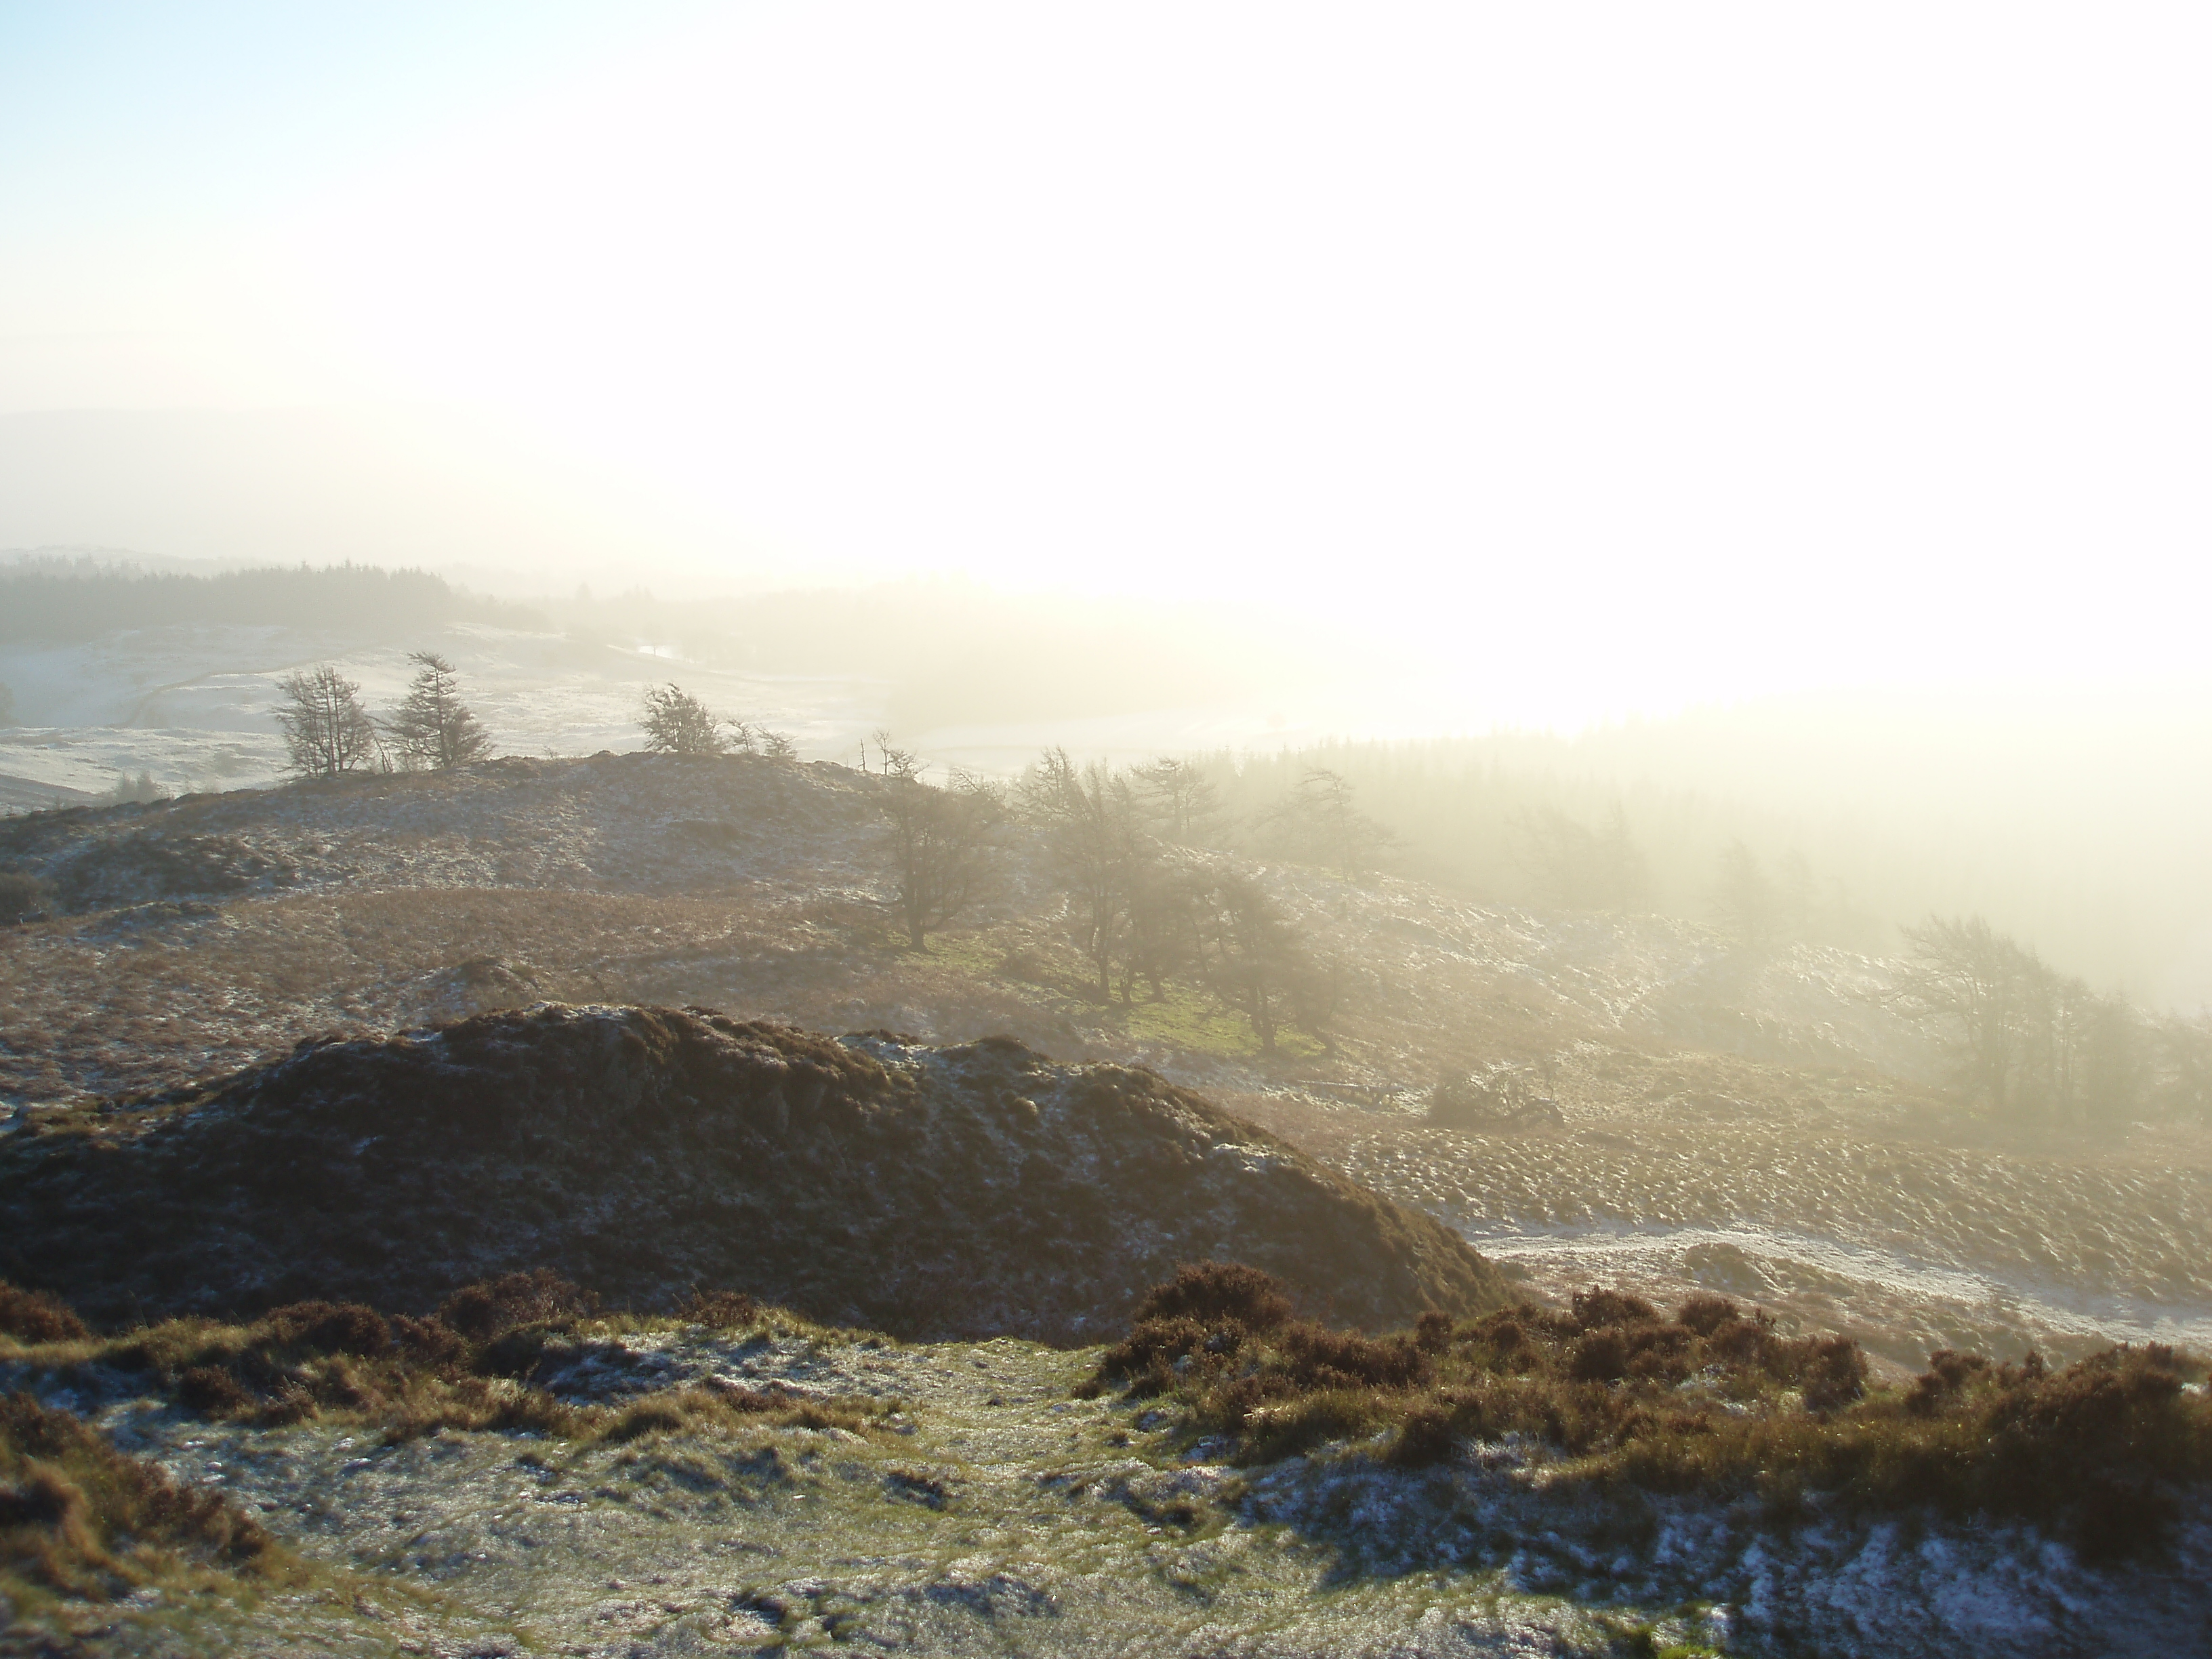 cumbria mountain top winter landscape with lens flare